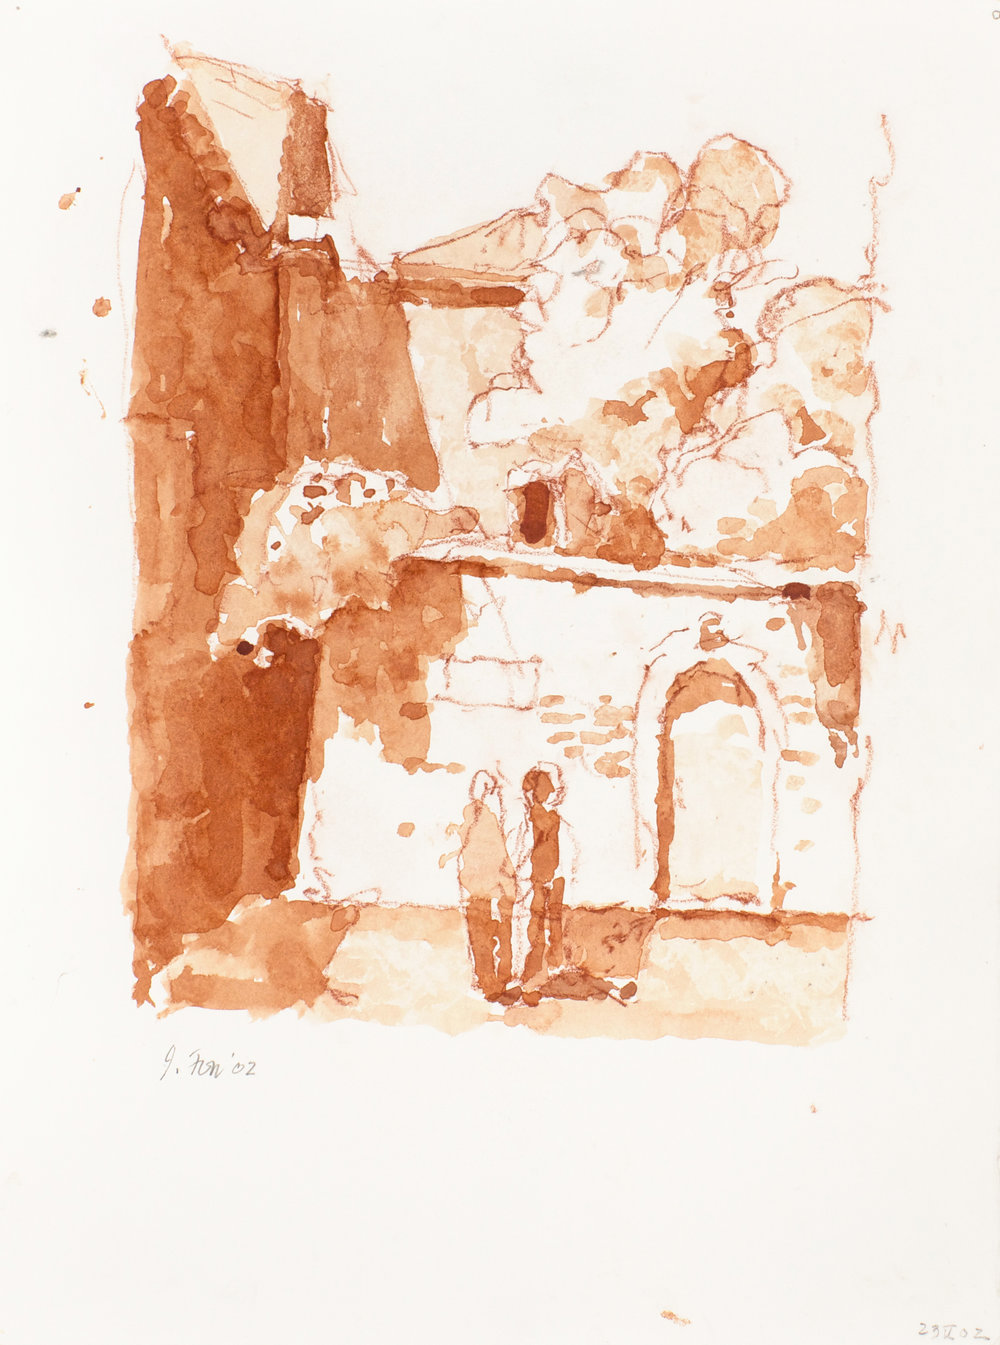 2002_Campiello_della_Madonna_watercolour_and_red_conte_on_paper_15x11in_38x28cm_WPF300.jpg